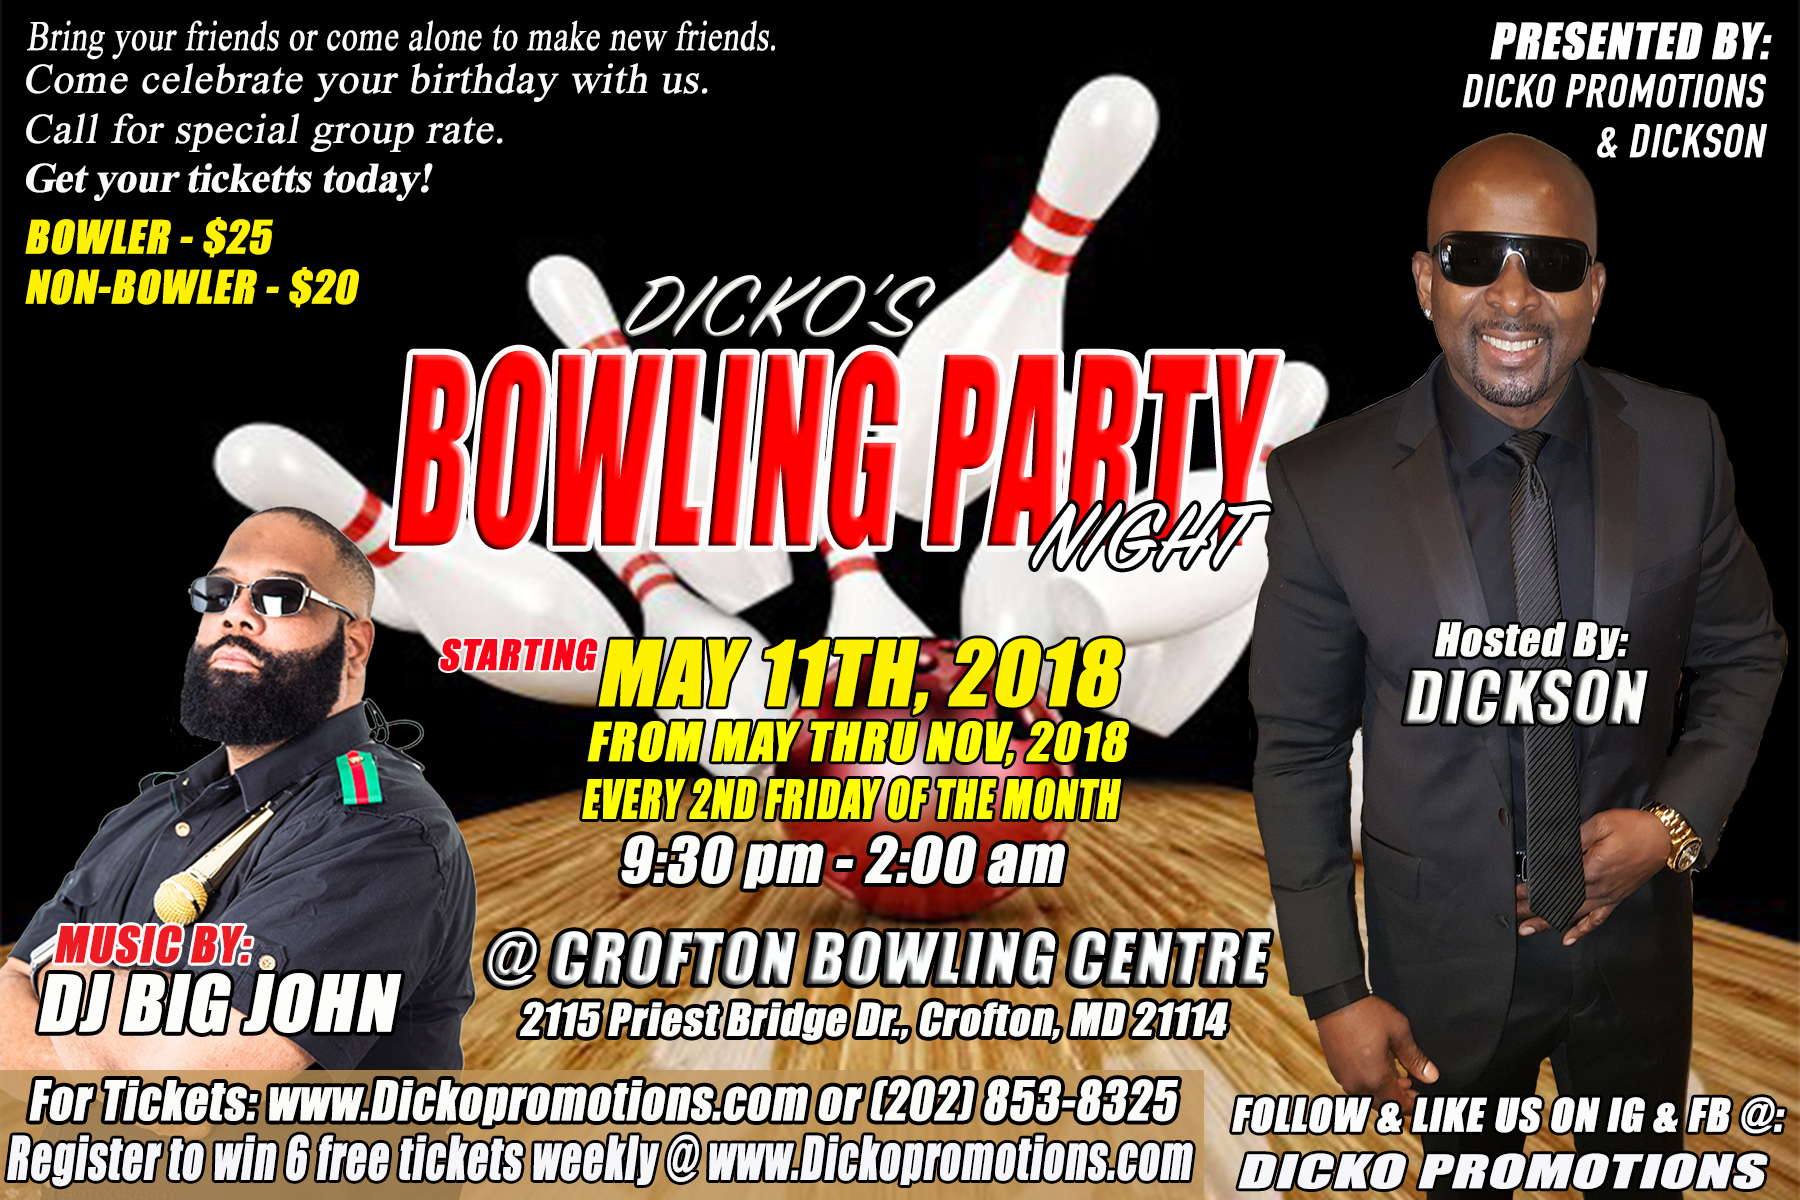 Dicko's Bowling Party 2018